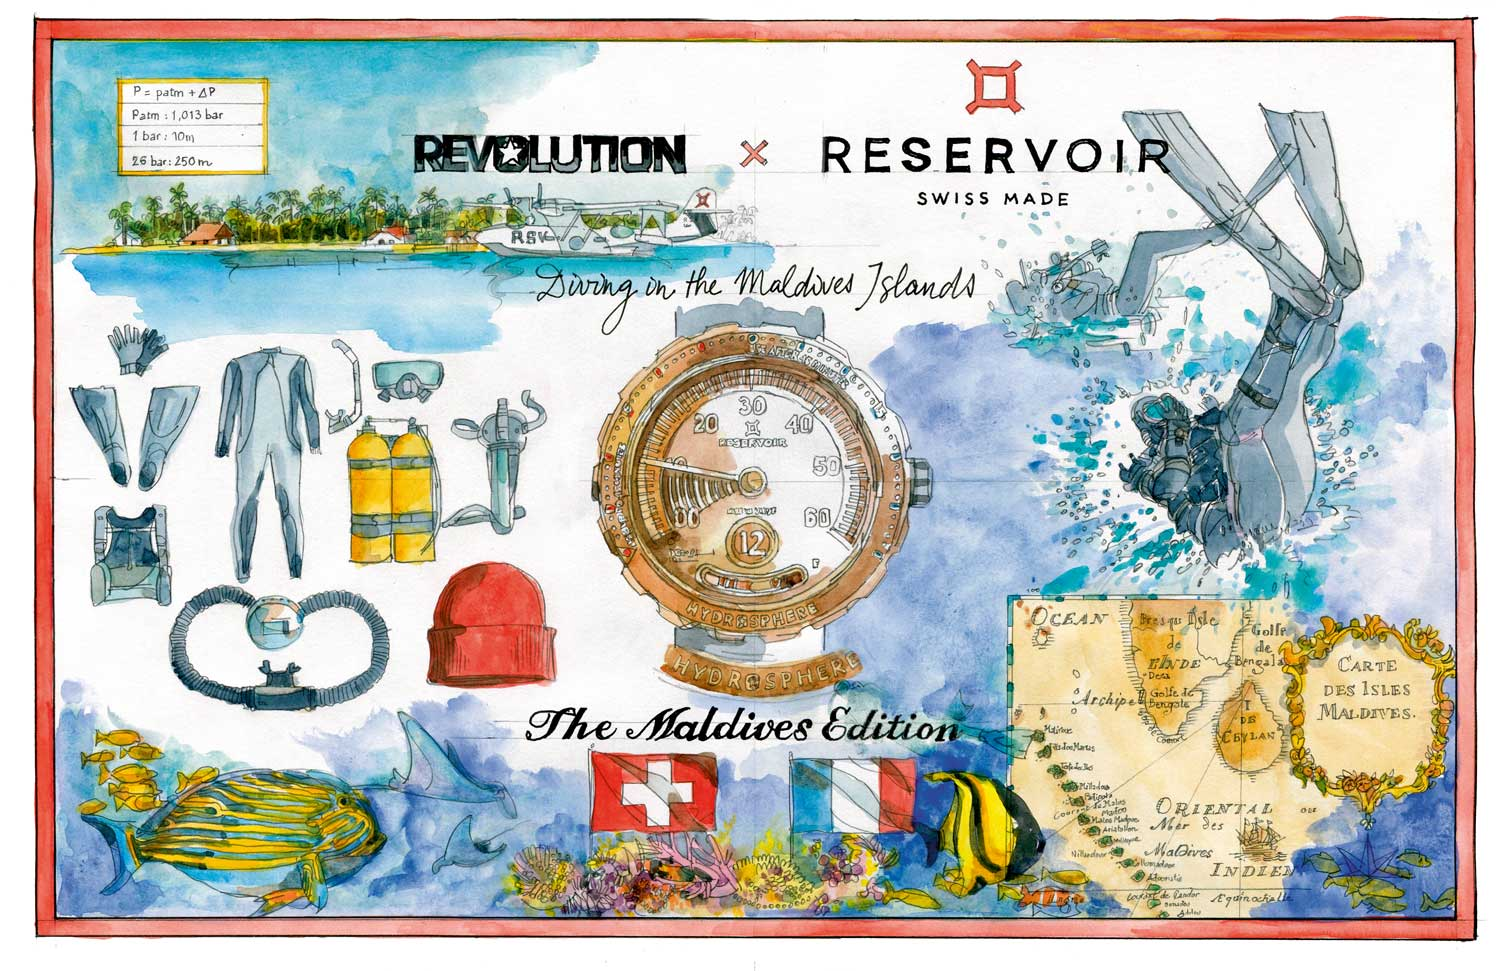 Artwork by Alain Bouldouyre, commissioned by Reservoir to tell the story of our collaboration.